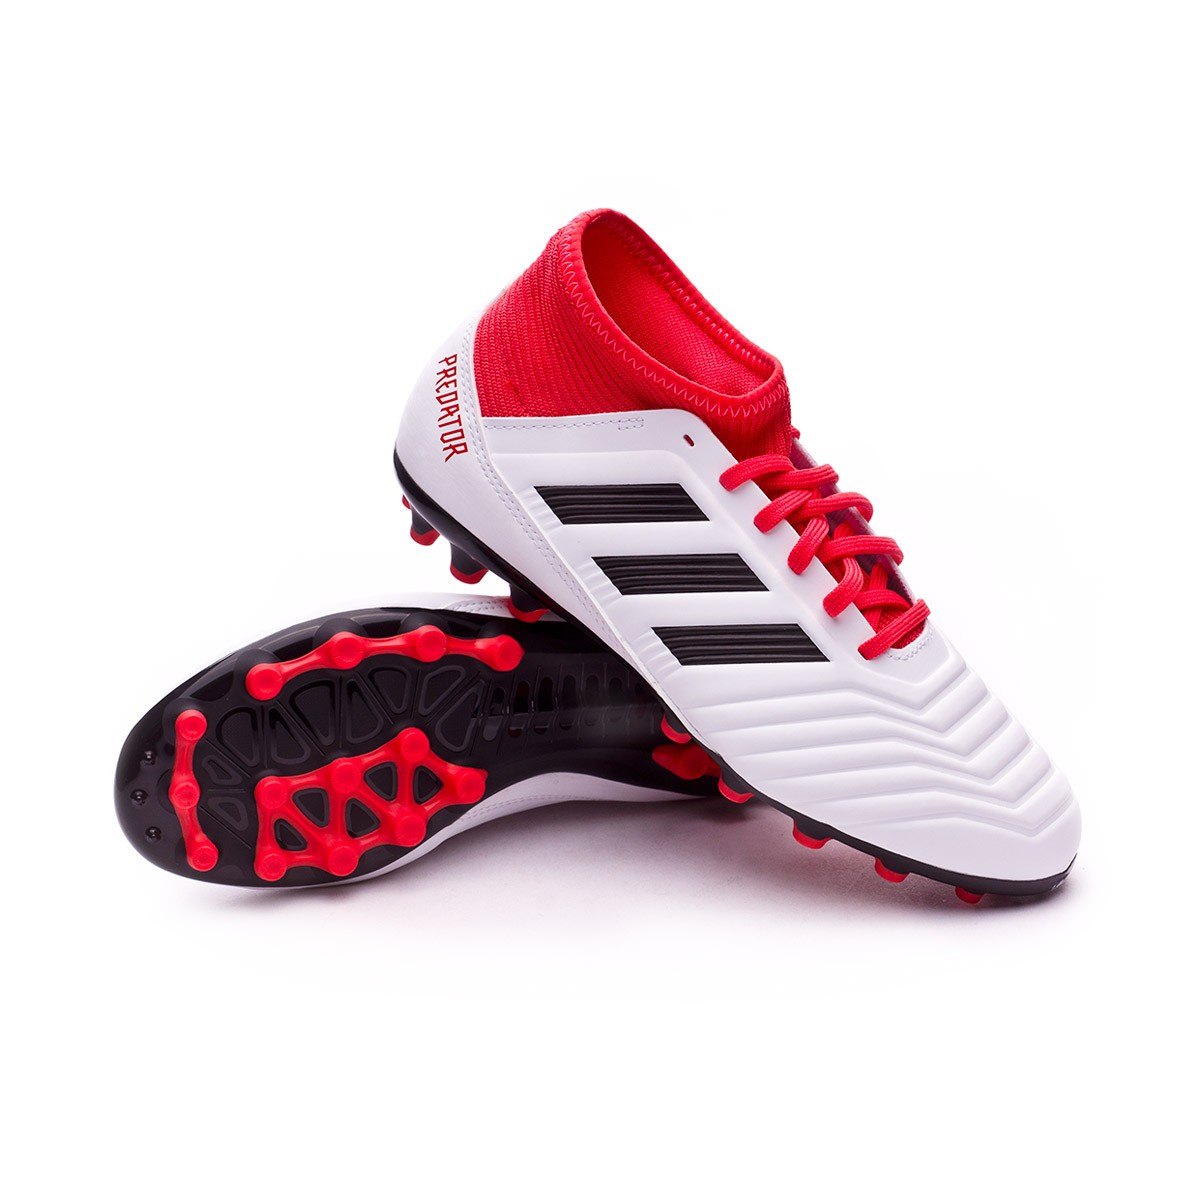 6a7d5582d48 adidas Kids Predator 18.3 AG Football Boots. White-Core black-Real coral ...